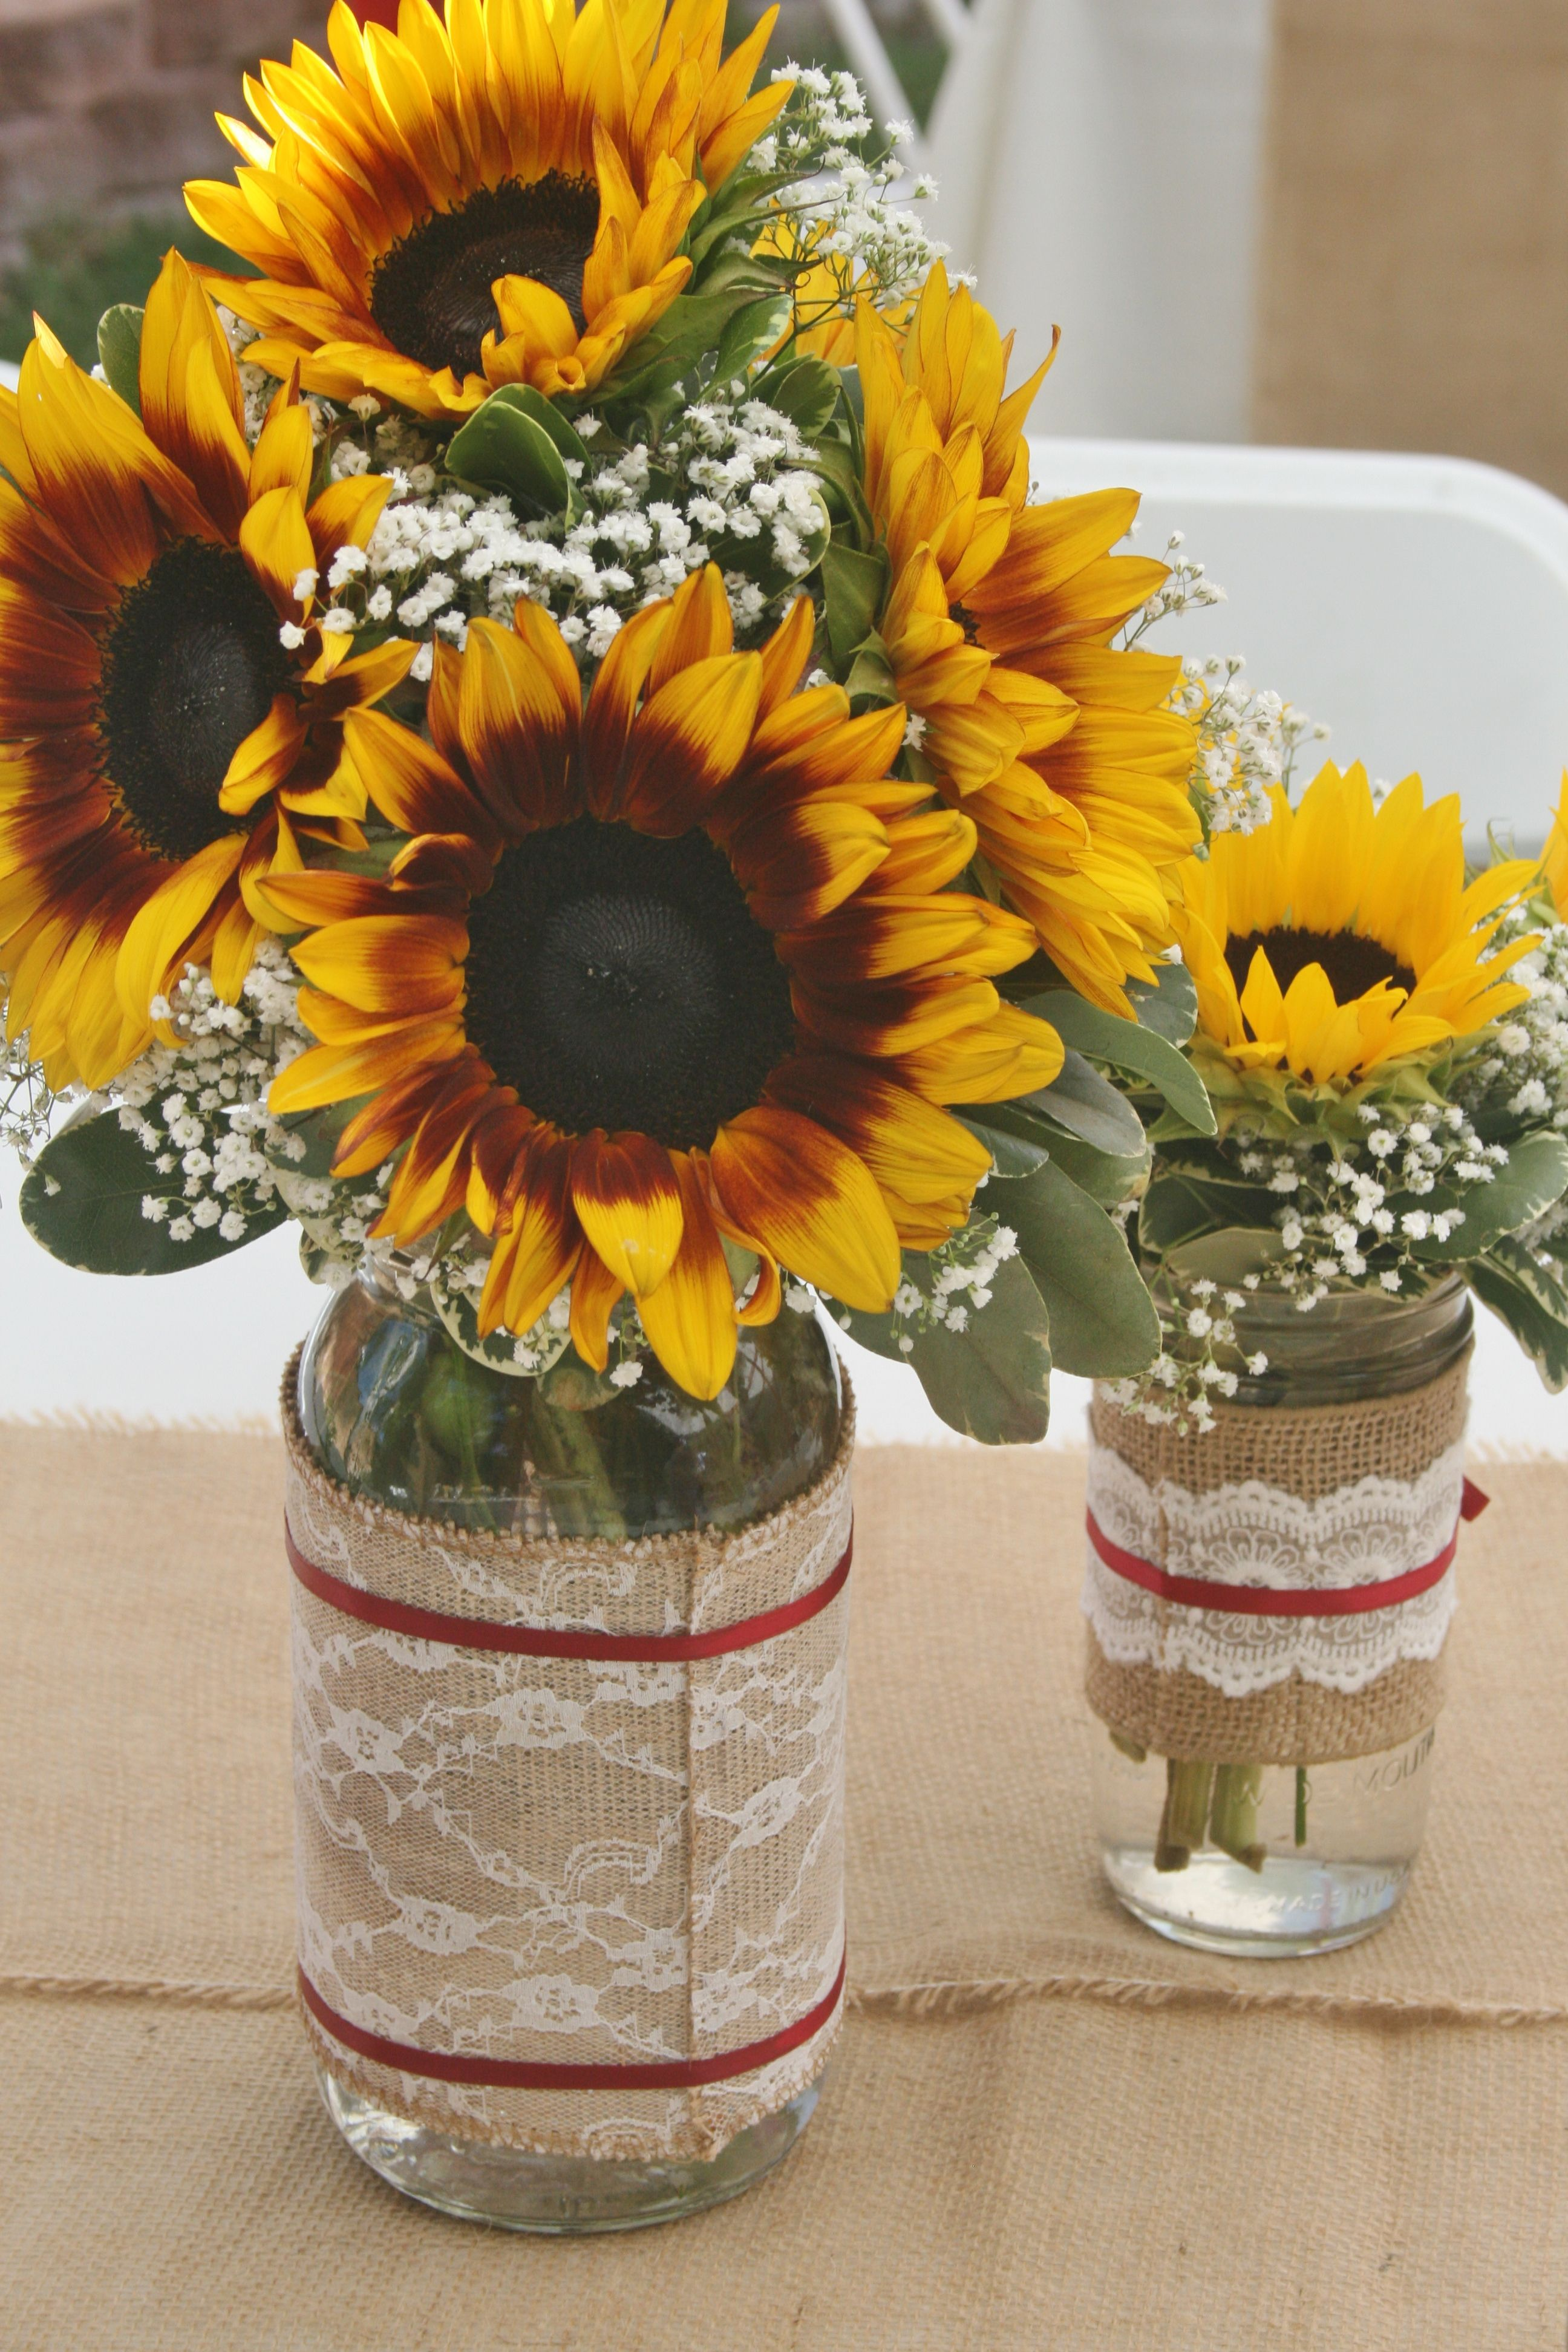 Sunflowers And Babys Breath In A Mason Only Thin Blue Ribbon For FFA